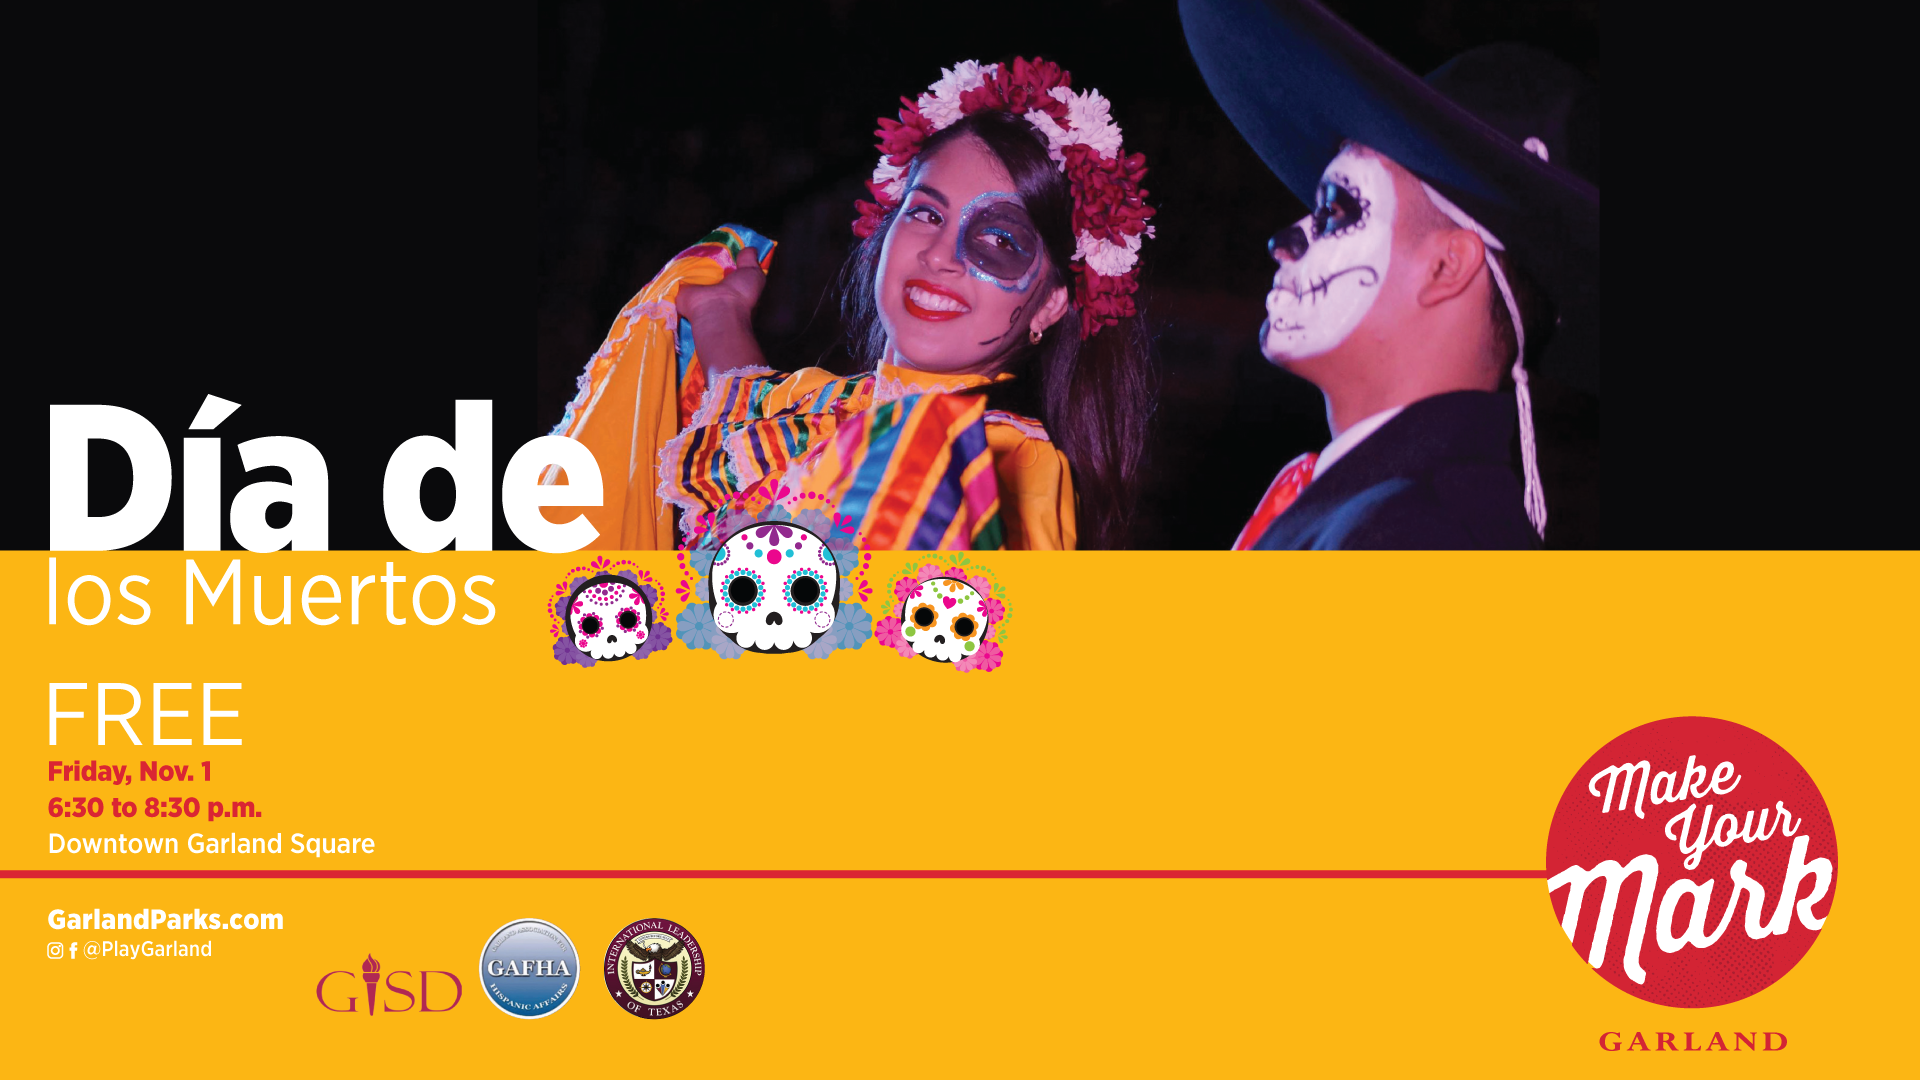 Mariachi performer and dancer with faces painted, text reads Dia de los muertos, Make Your Mark